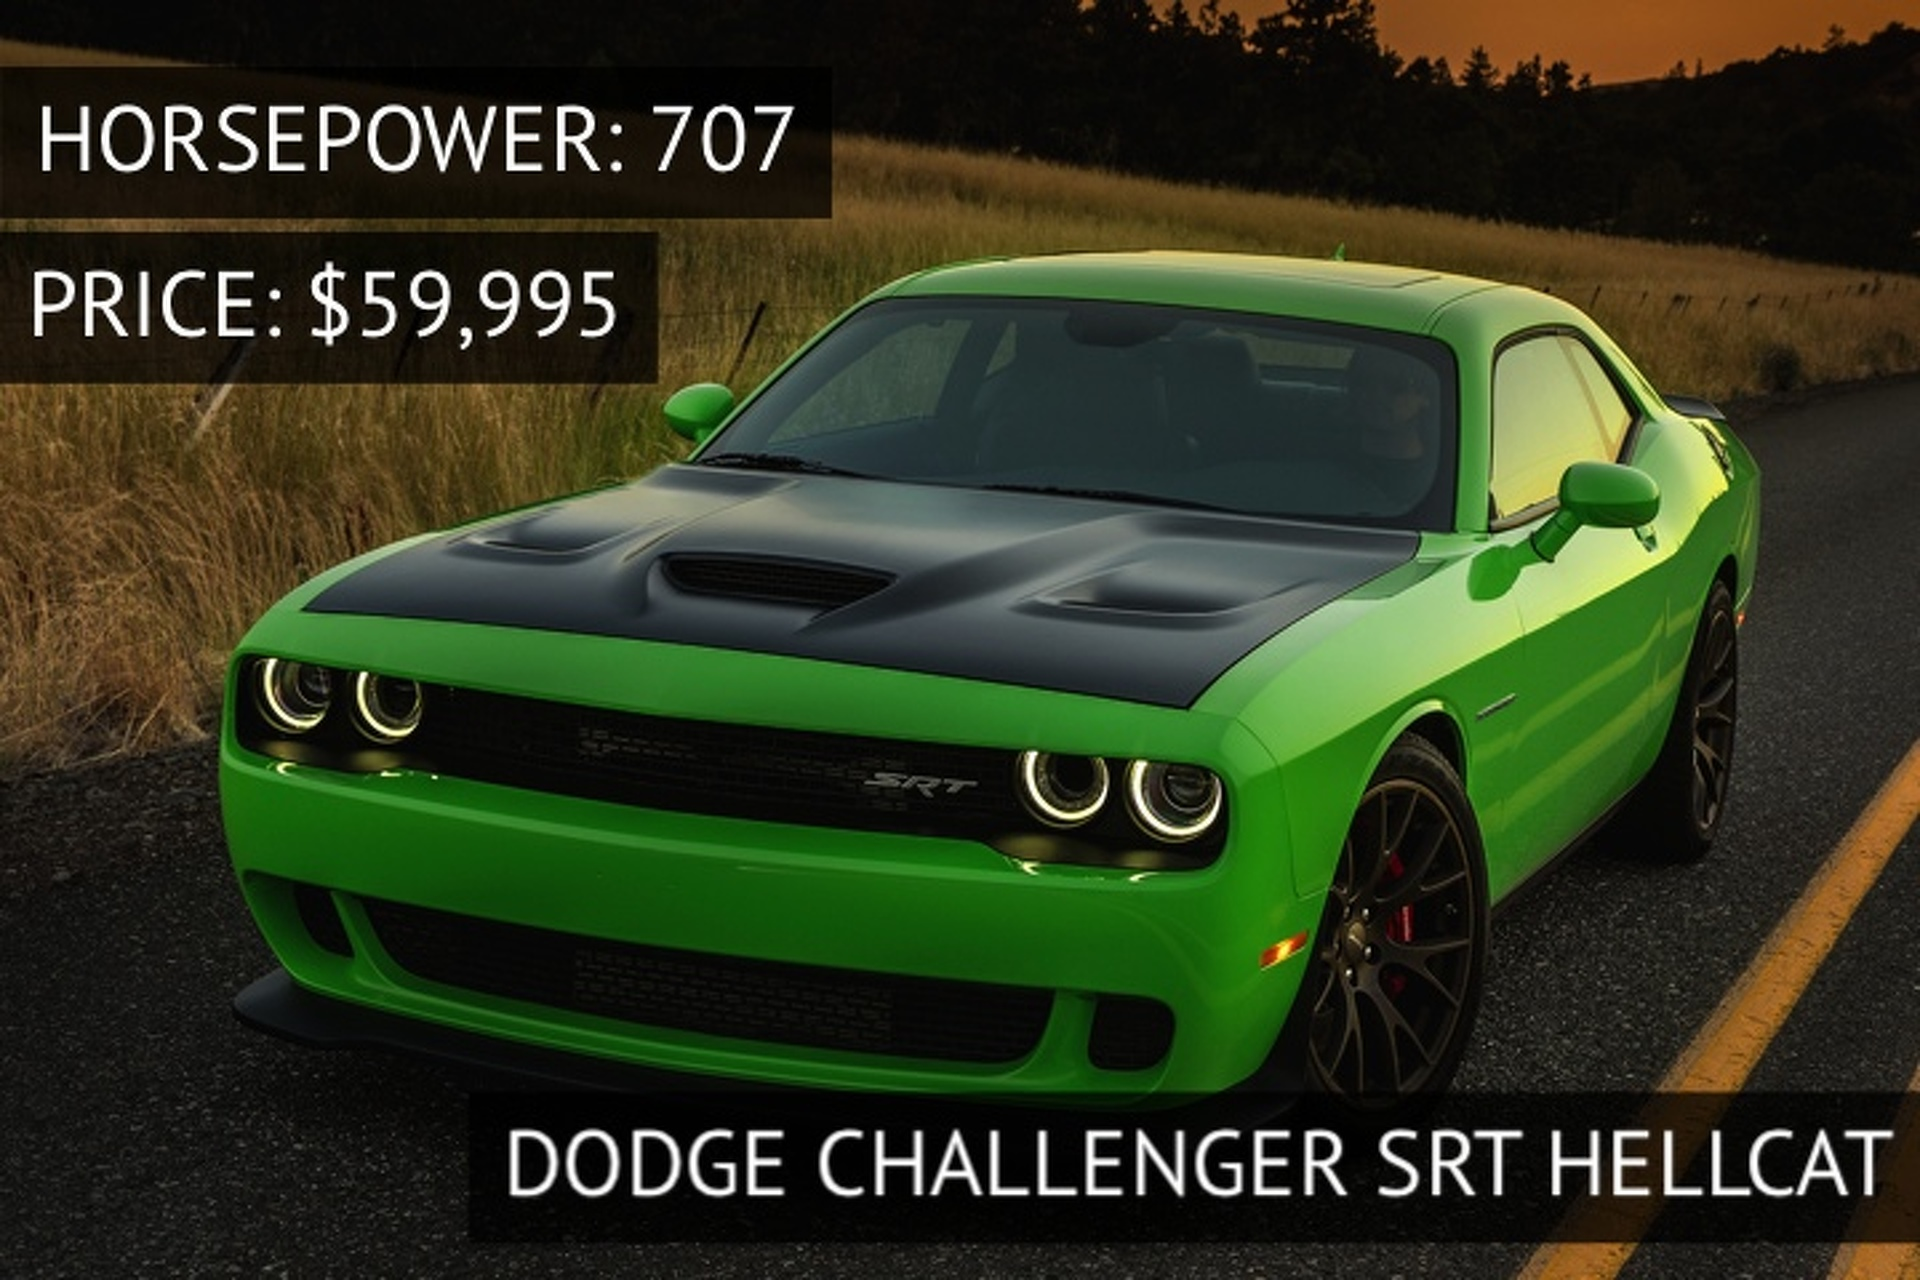 Dodge Charger Hellcat vs Challenger Hellcat: Which Would You Rather? [Poll]